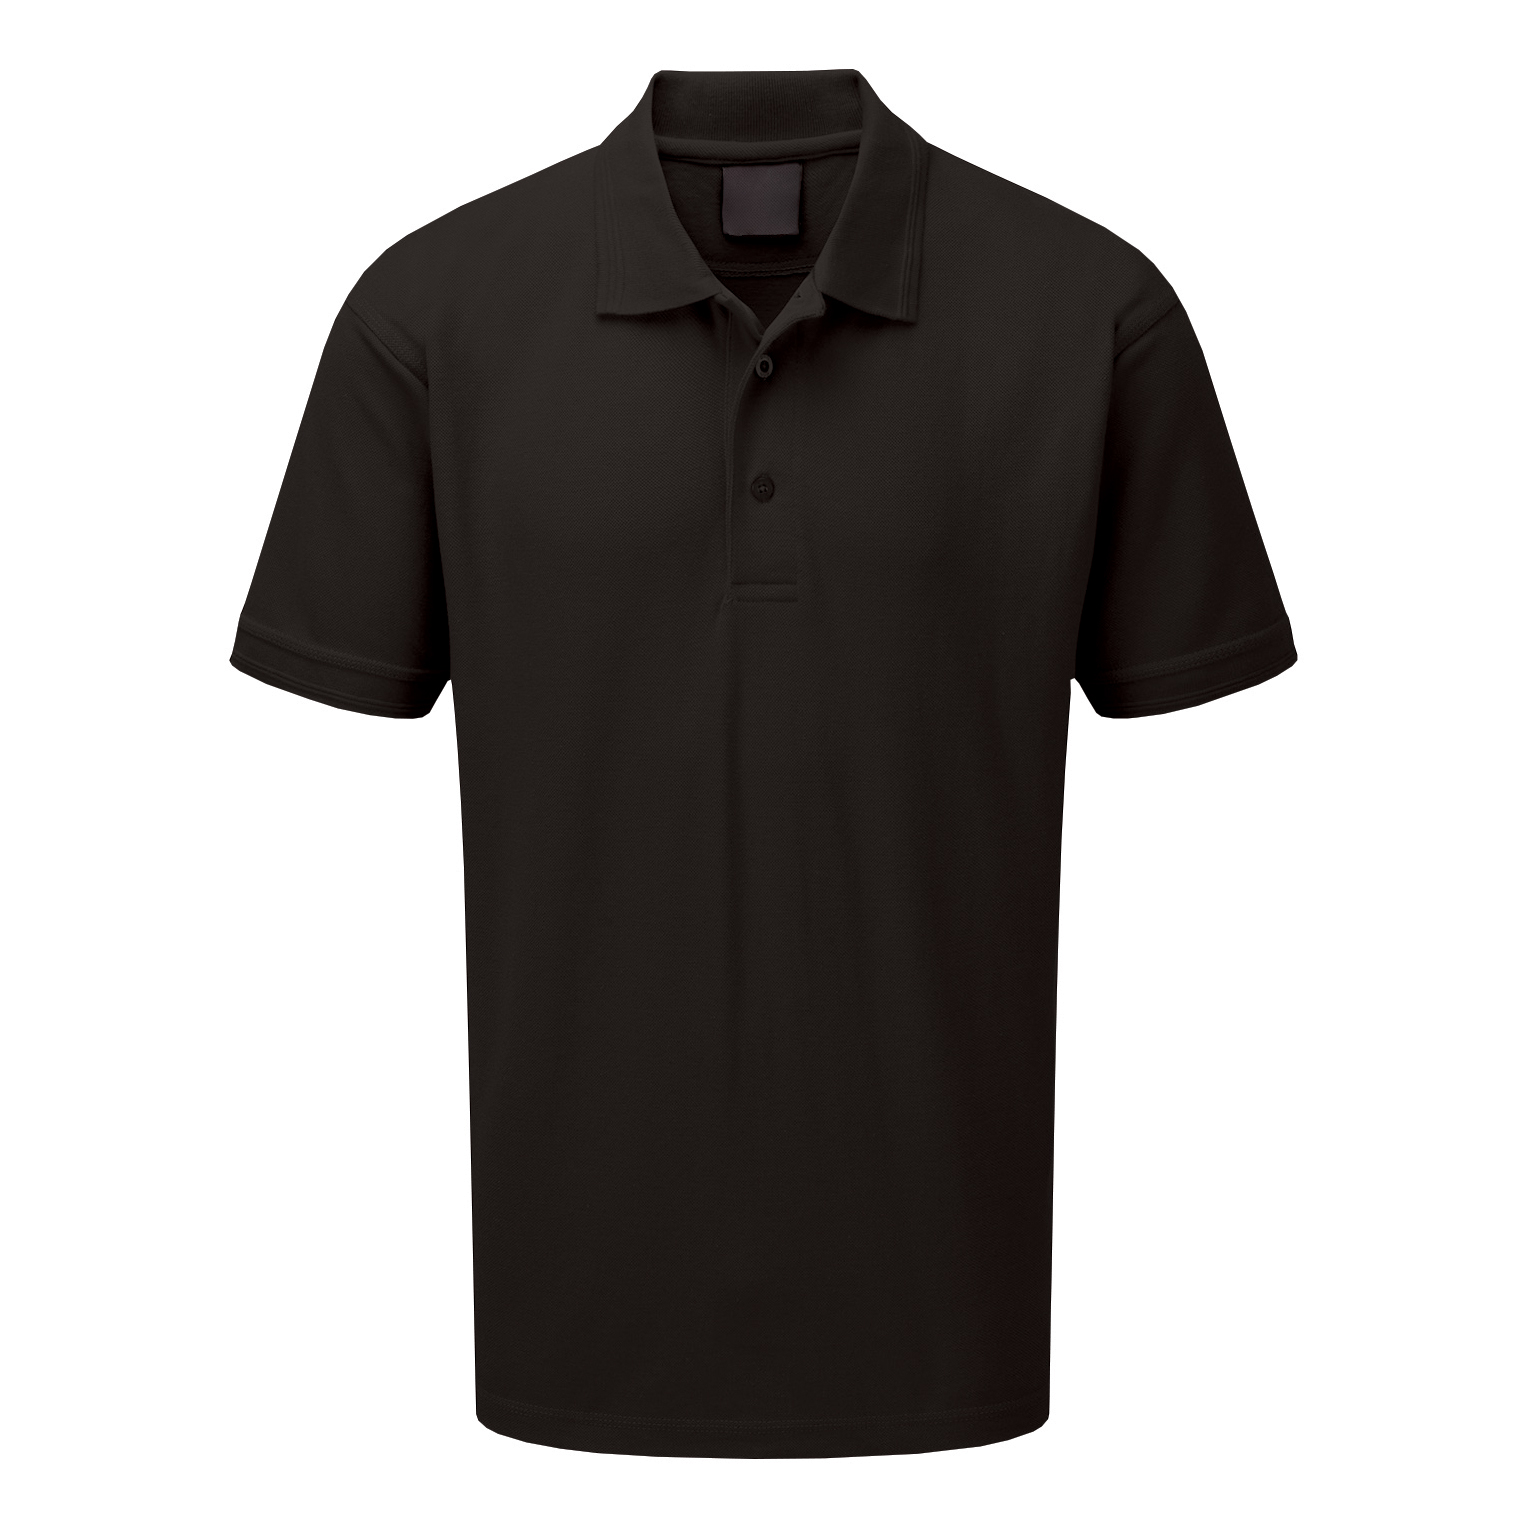 Supertouch Polo Shirt Classic Polycotton Large Black Ref 56CA3 *Approx 3 Day Leadtime*